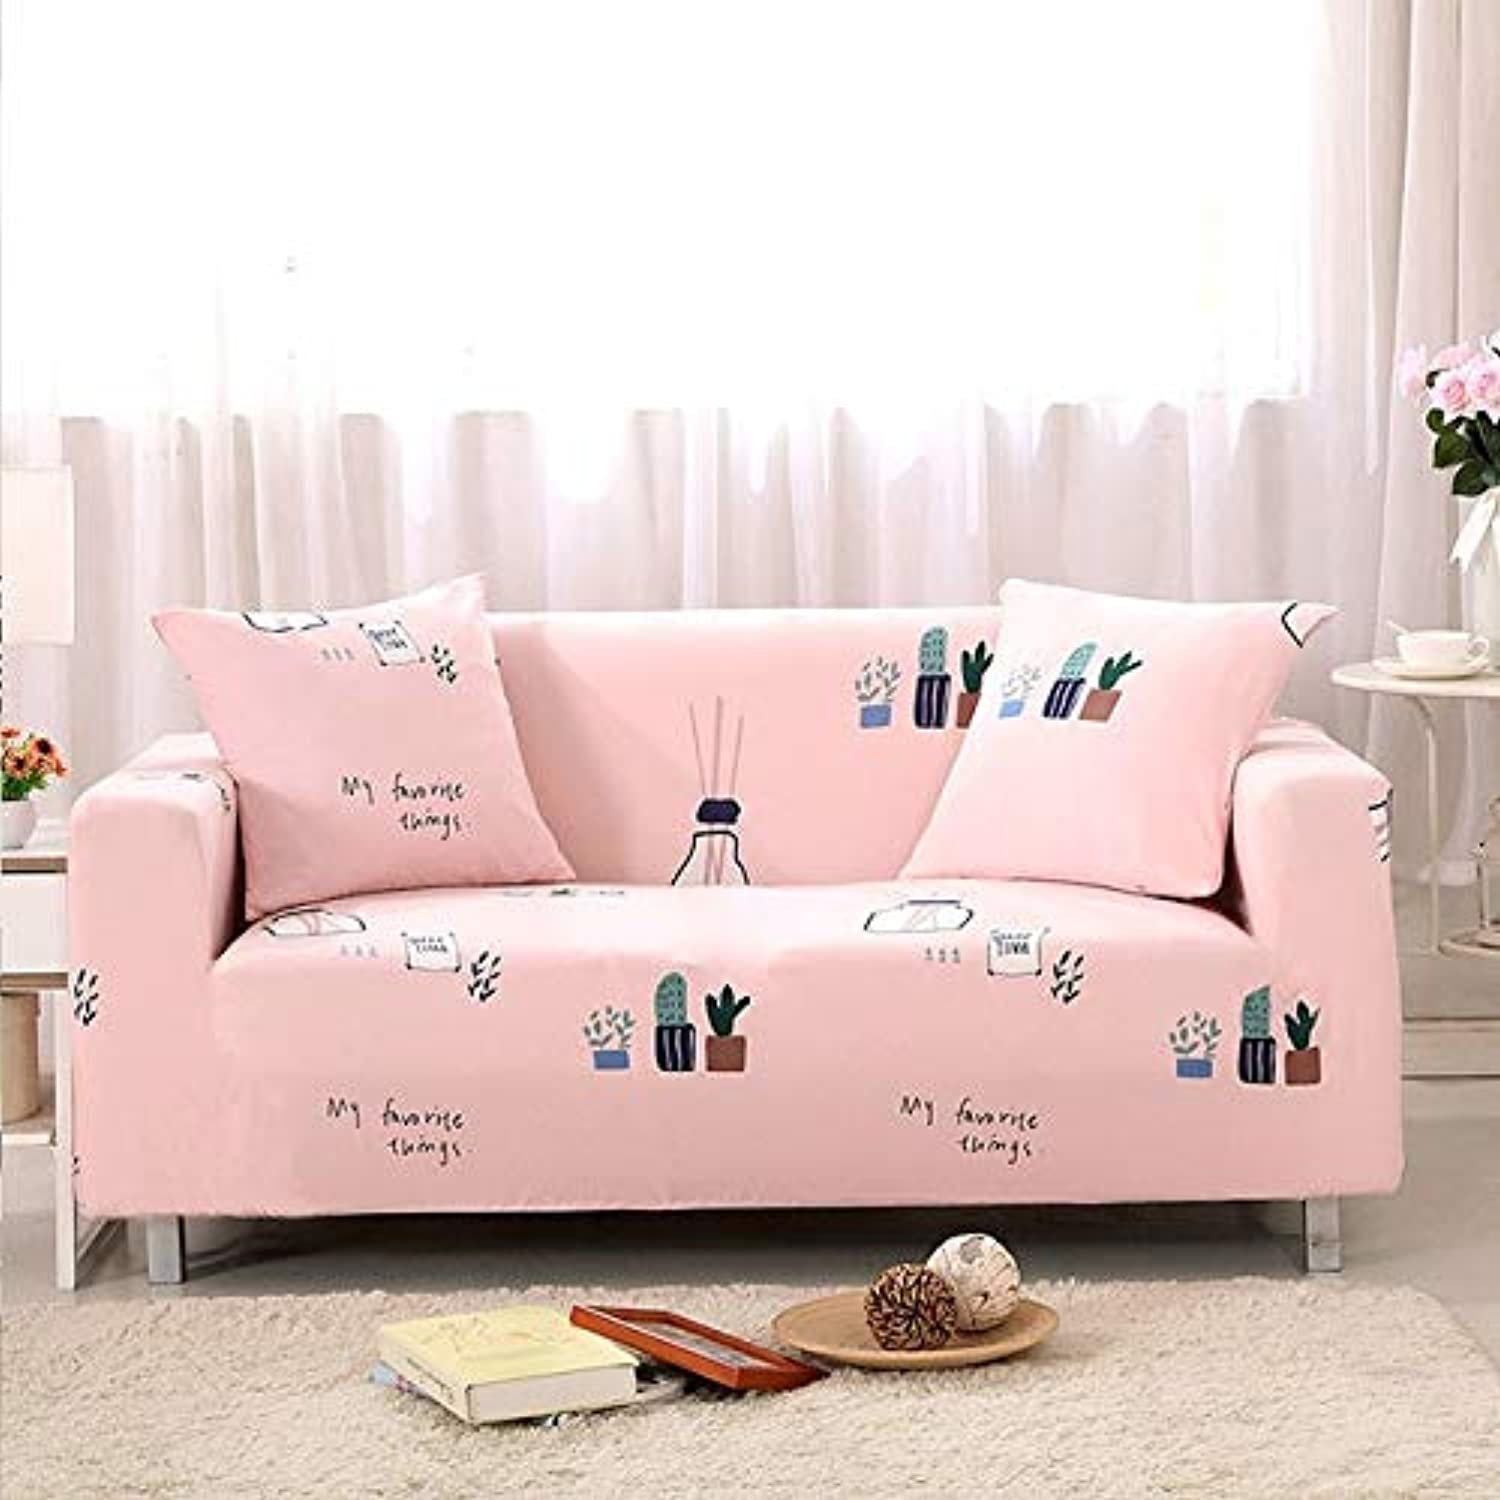 Farmerly 1pcs Flower Leaf Soft Stretch Sofa Cover Home Decor Spandex Furniture Covers Decoration Covering Hotel Slipcover 58001   H, Two seat